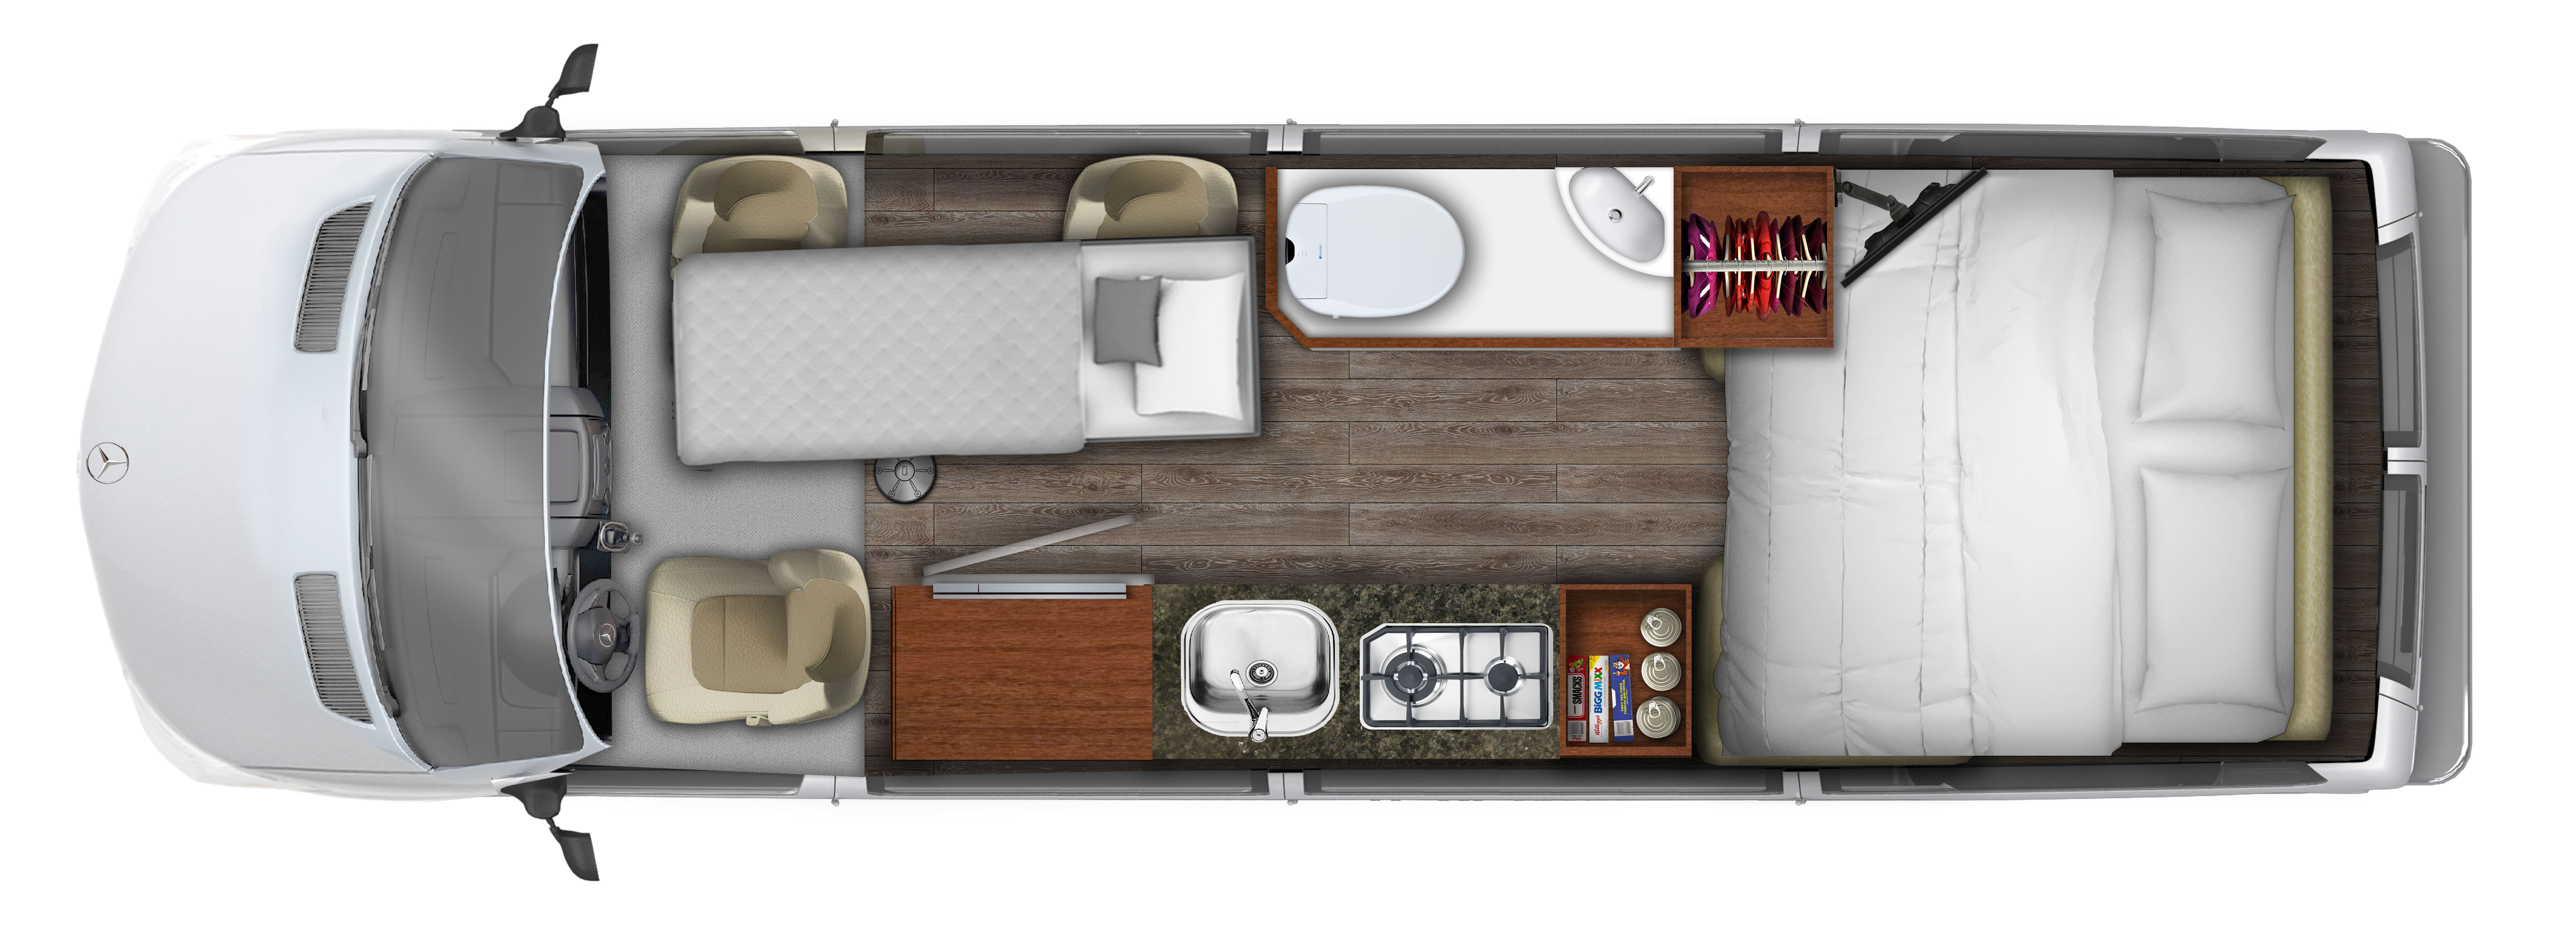 2018 RoadTrek Adventurous CS Floor Plan